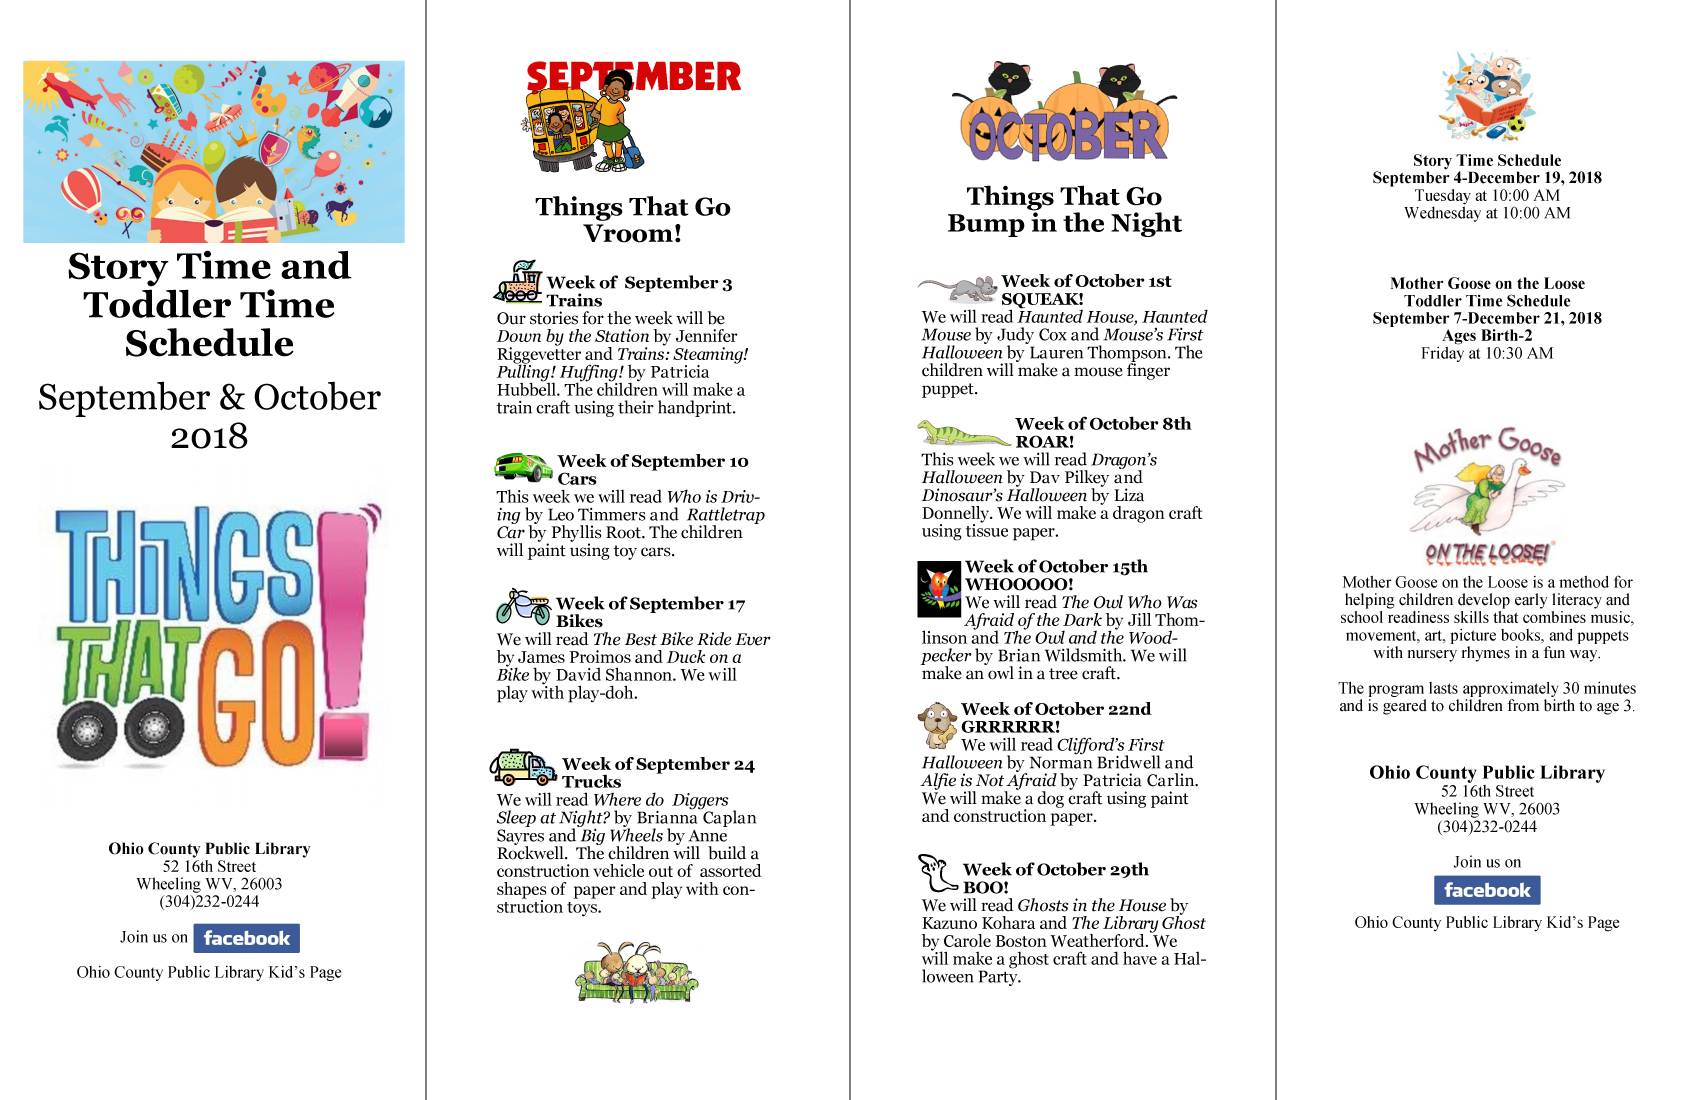 Story Time Schedule, Fall 2018